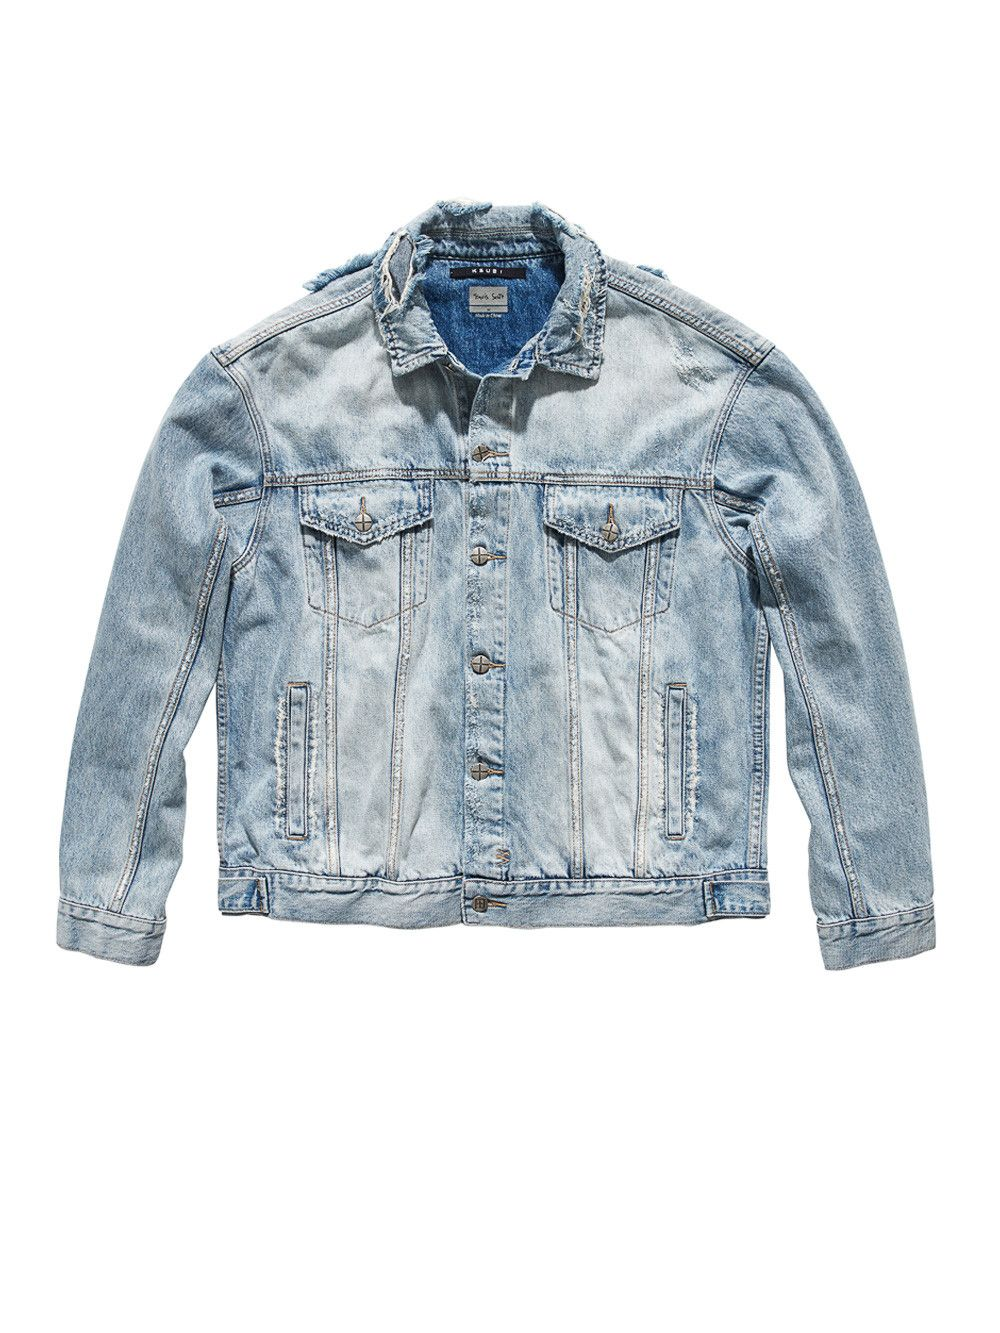 KSUBI X TRAVIS SCOTT Oh G ghosted denim jacket.  ksubixtravisscott  cloth   ac90ae9ba